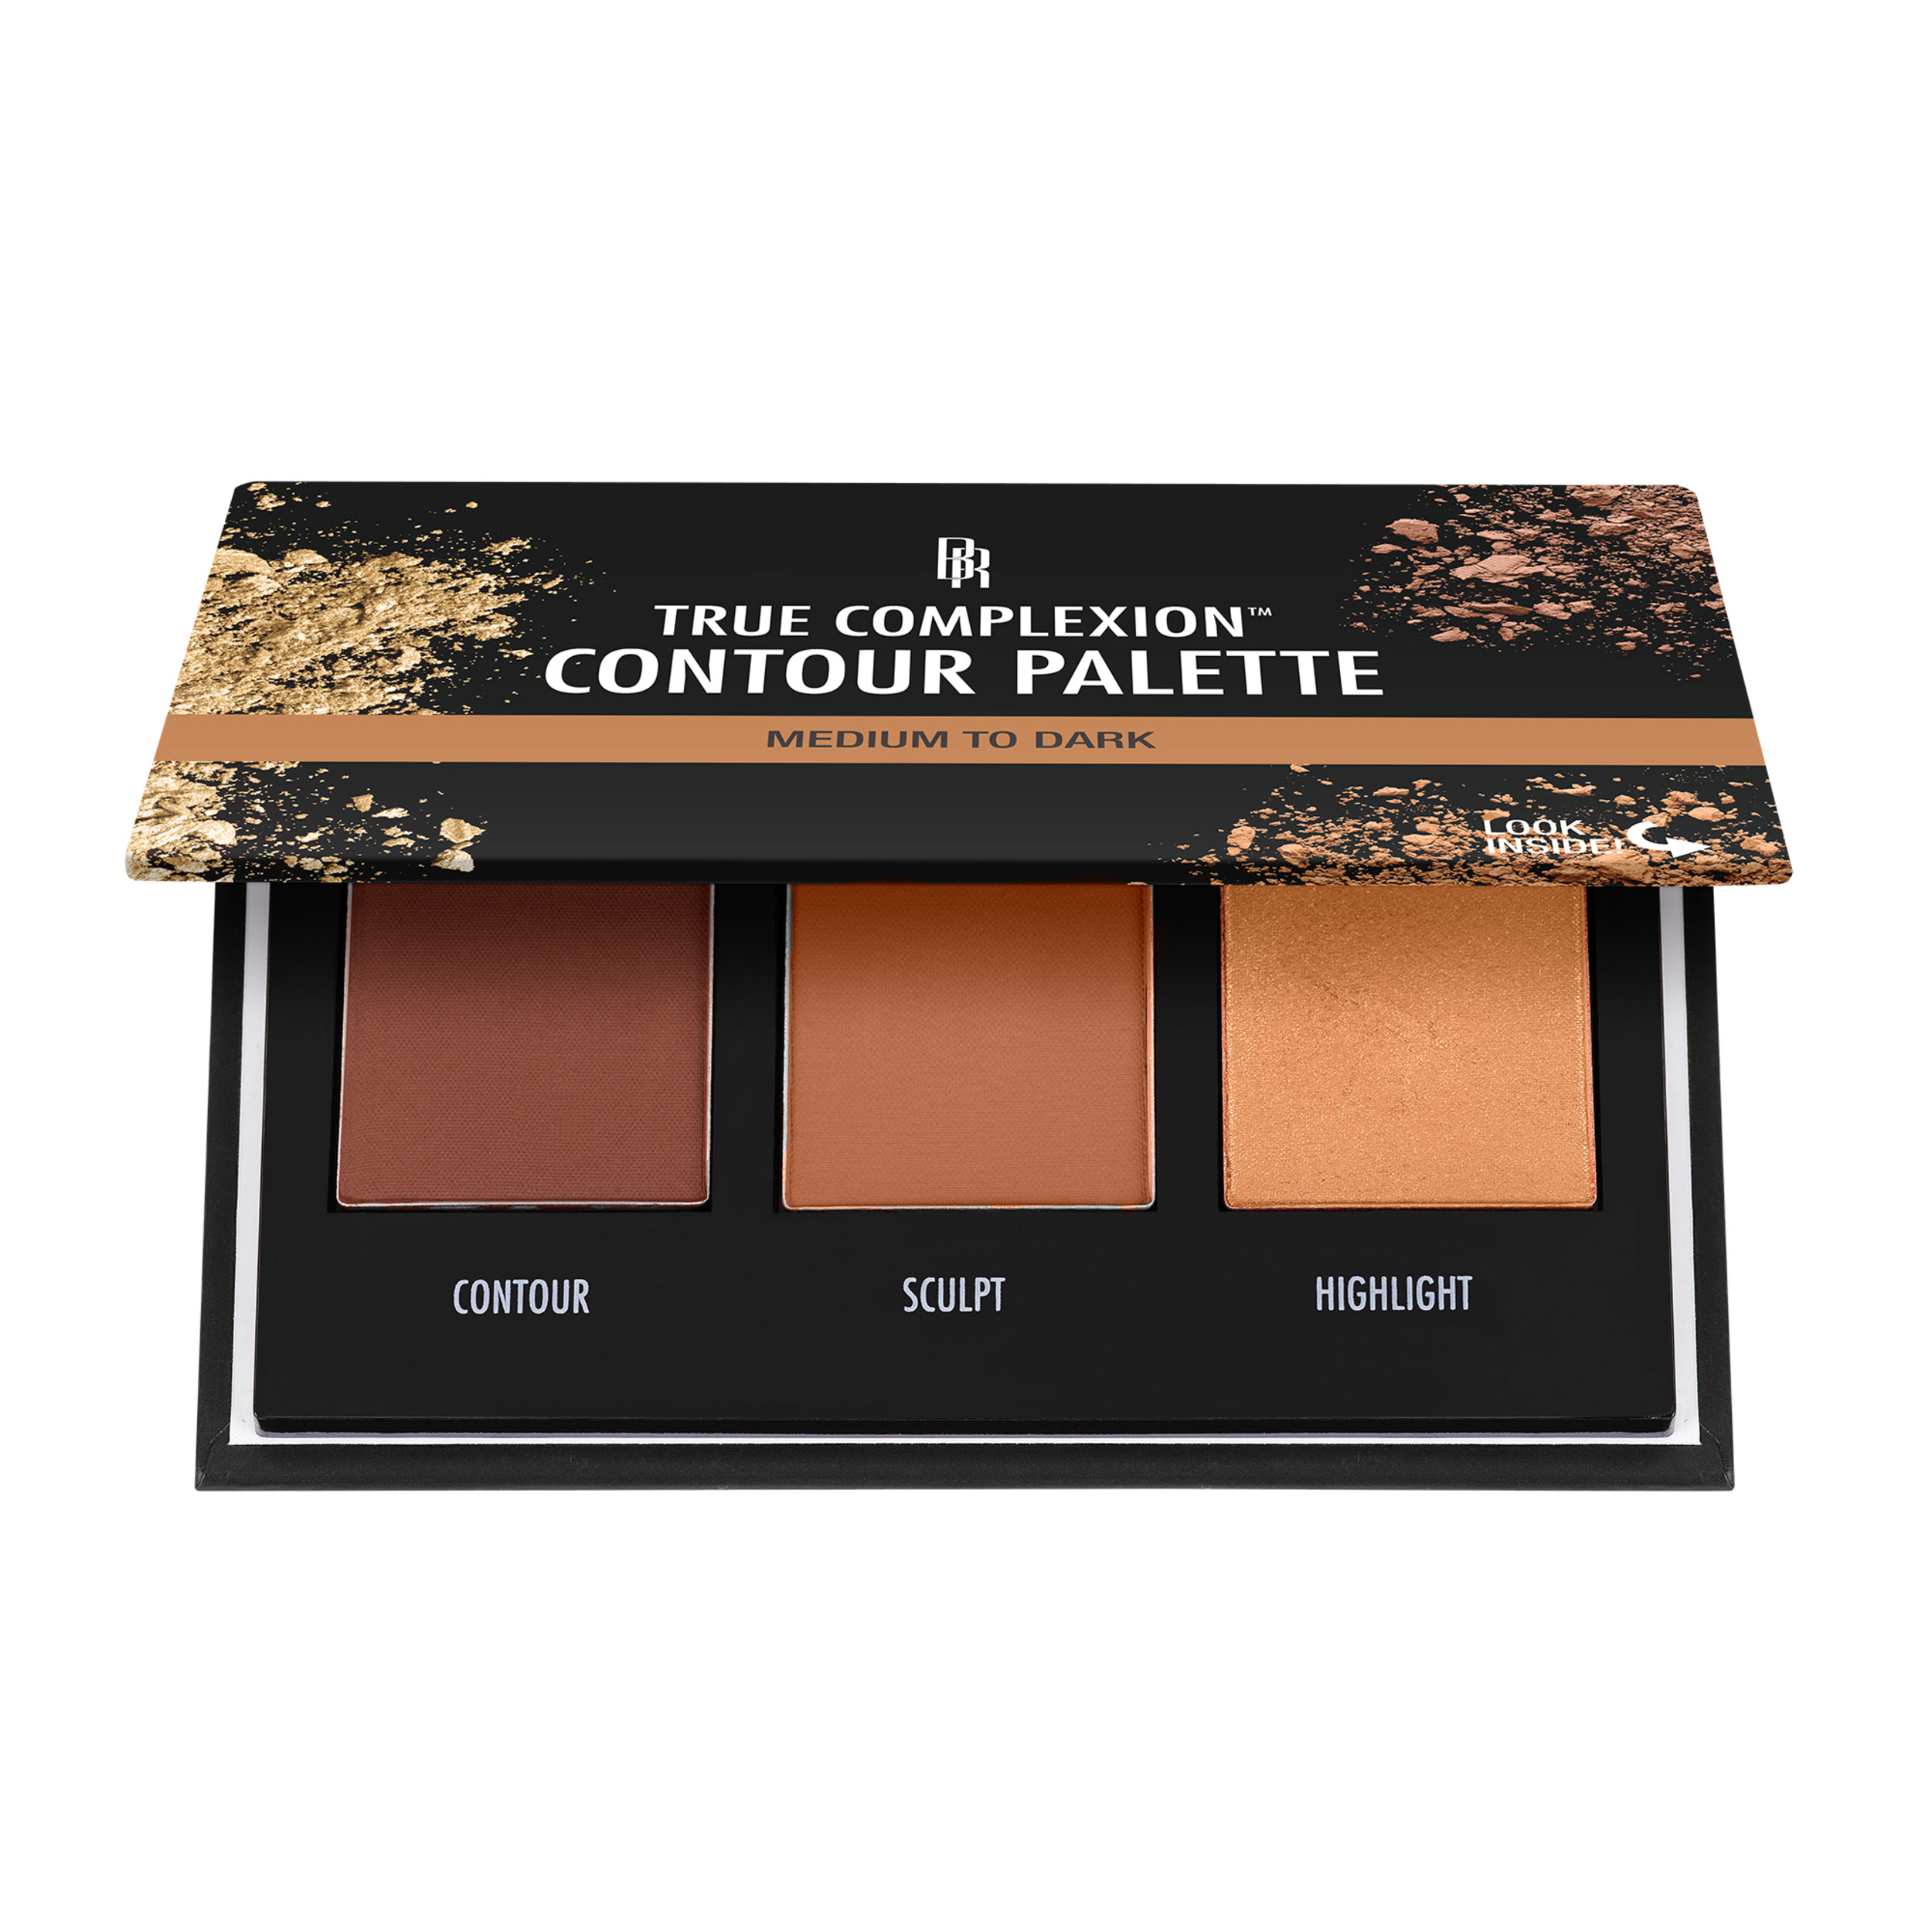 Black Radiance True Complexion Contour Palette, Medium to Dark